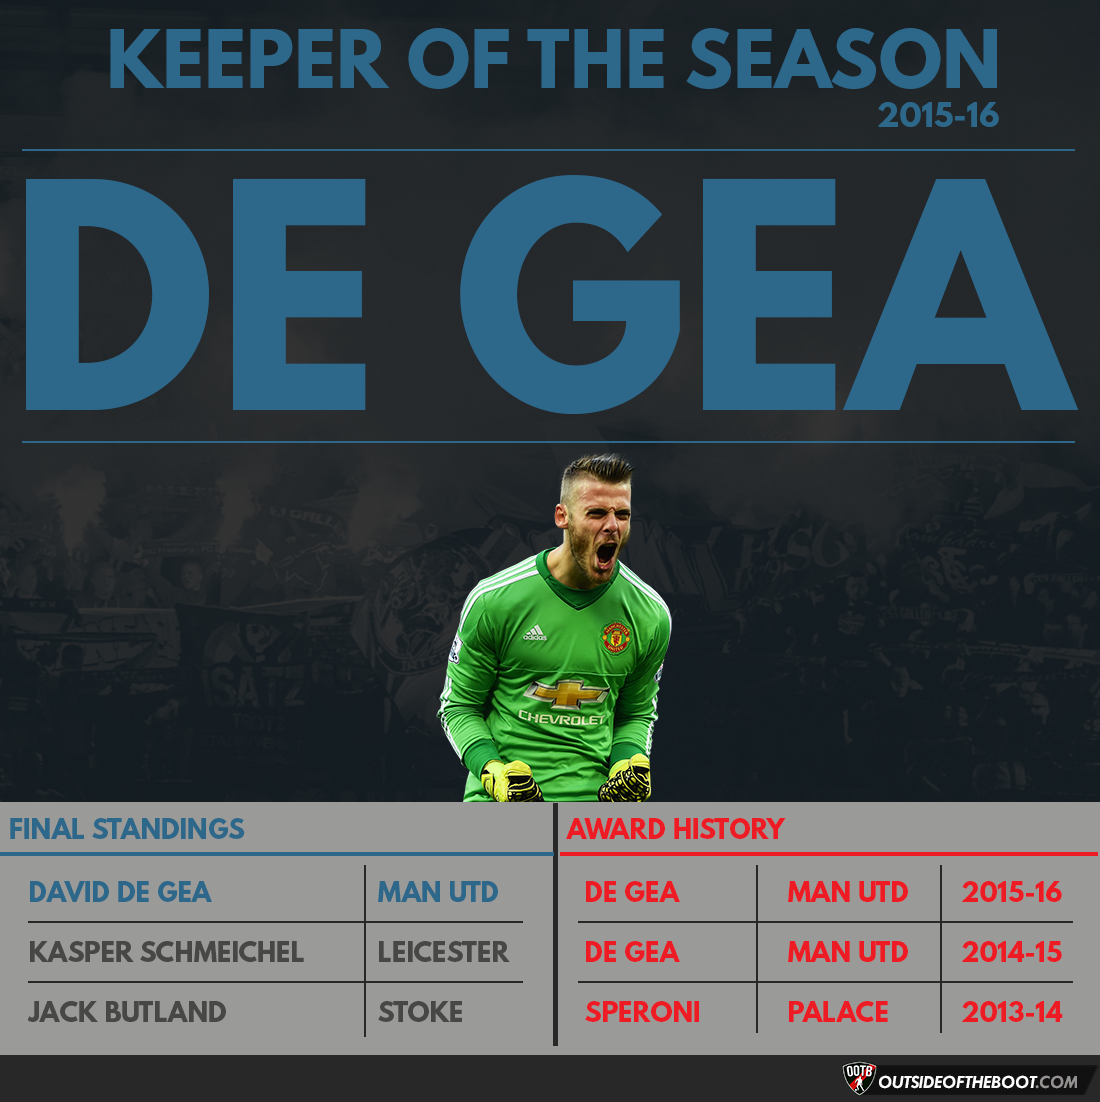 Premier League Keeper of the Season 2015-16